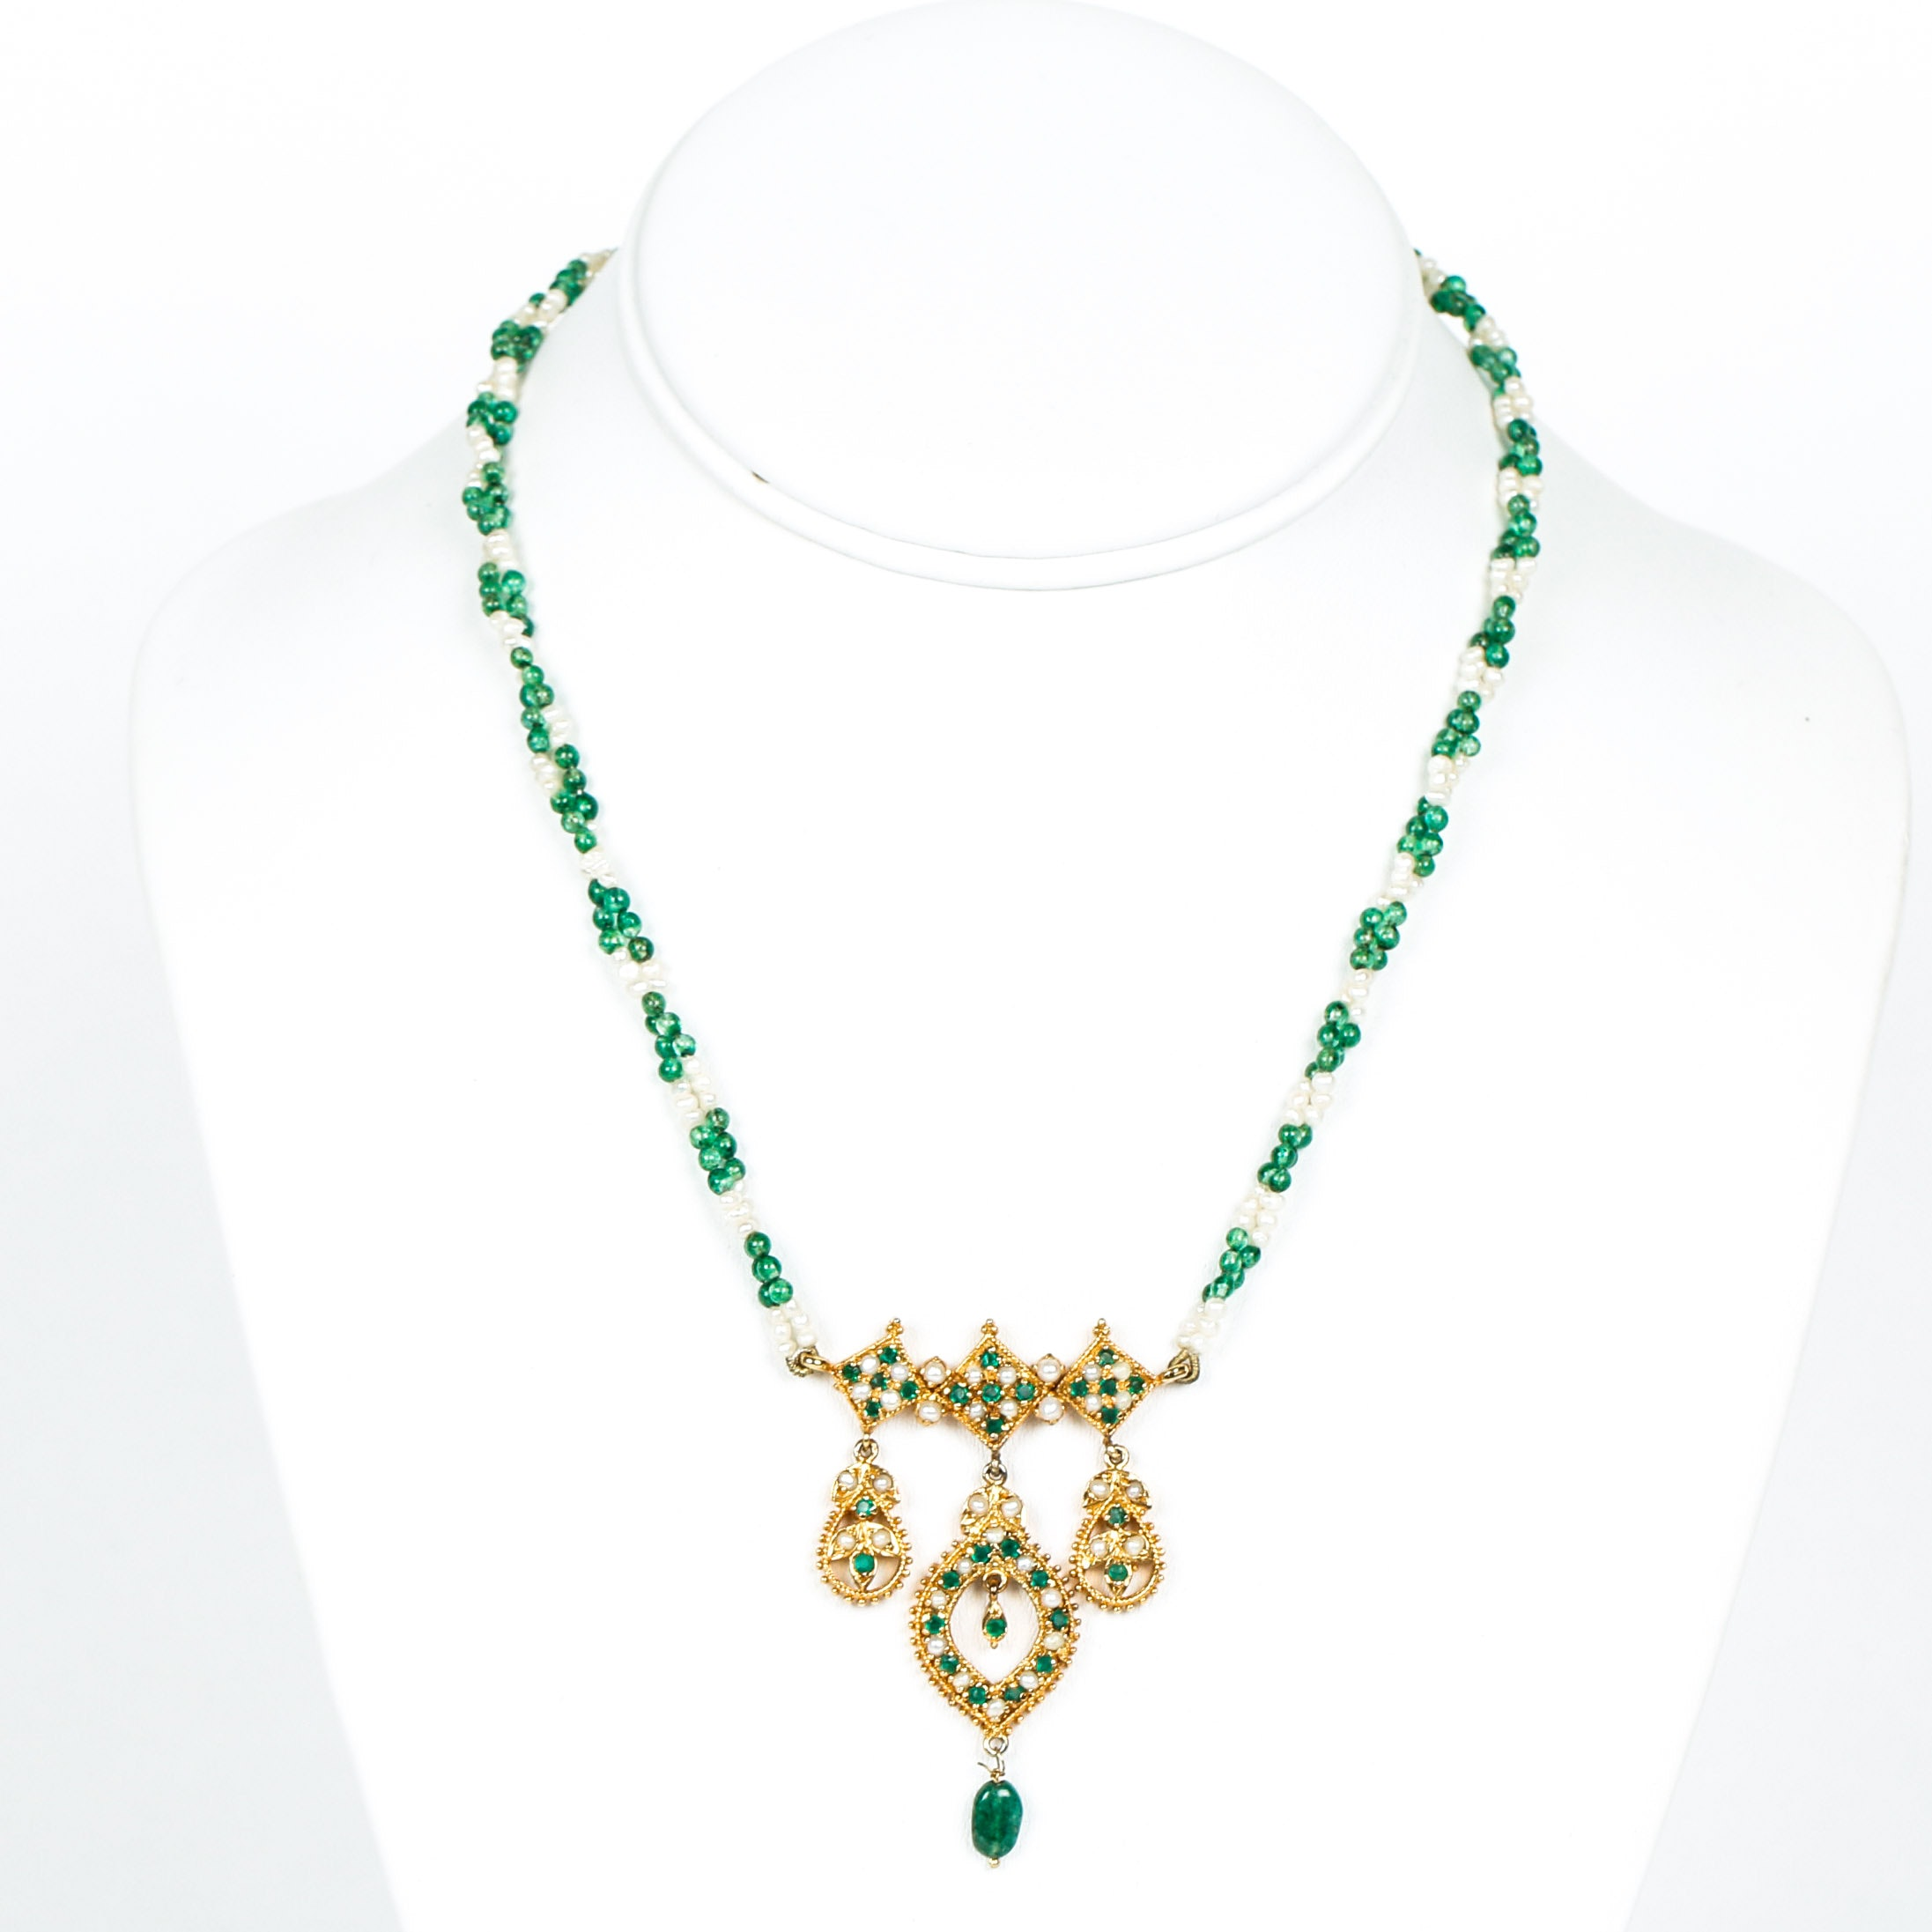 Indian Style Emerald, Seed Pearl and Glass Bead Necklace